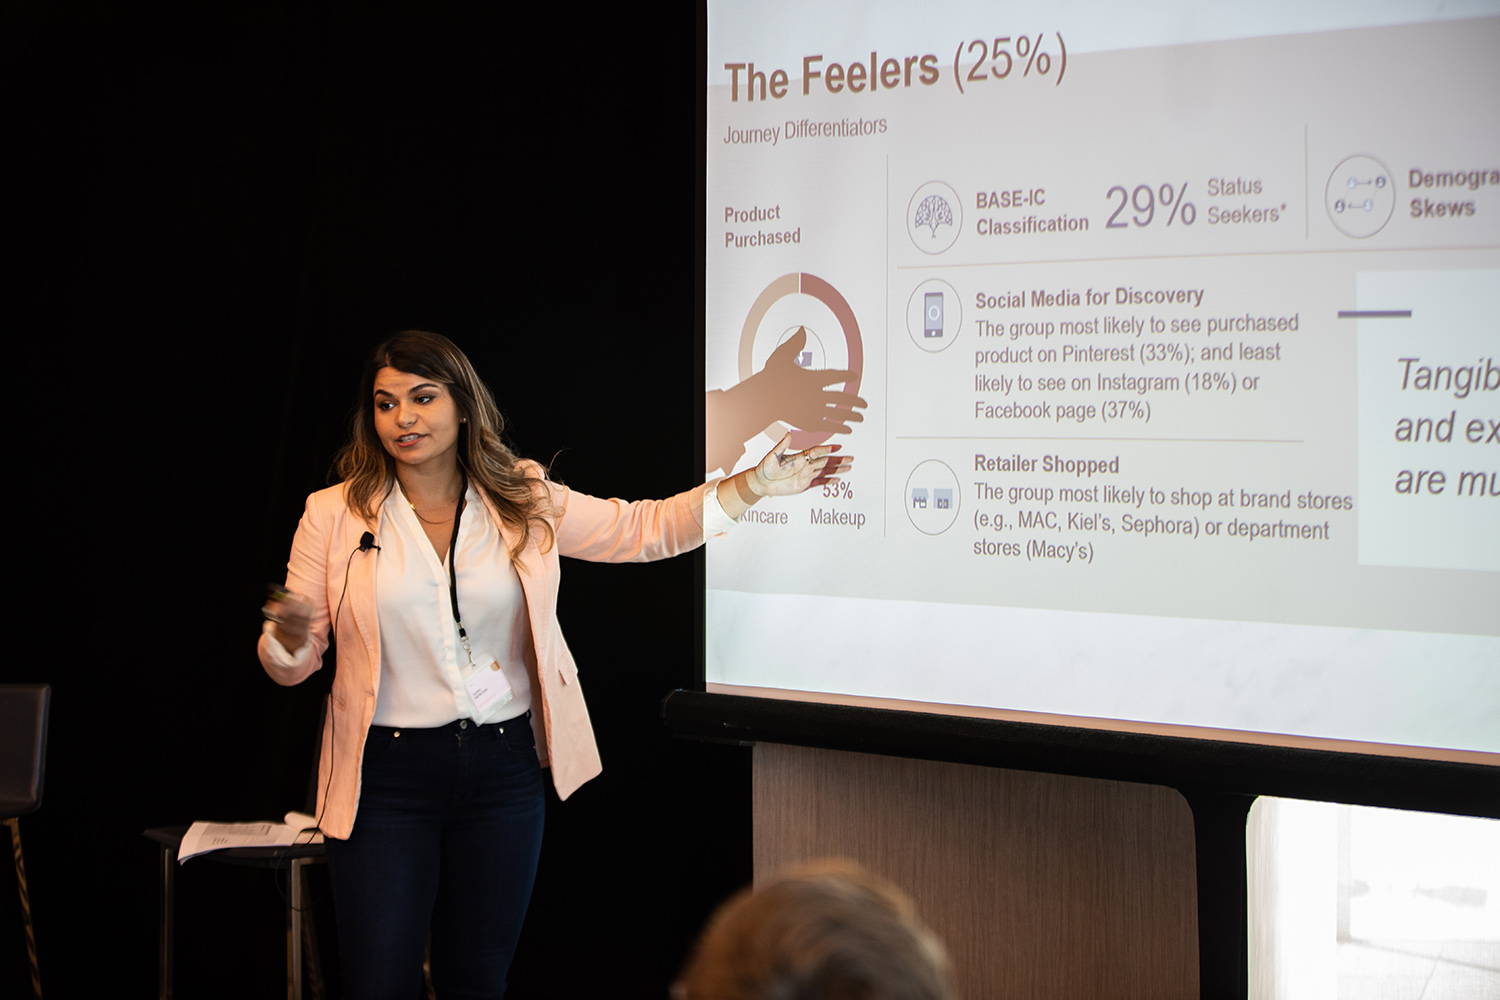 The discussion included such topics as why brands should take the long view and stop chasing trends, the anthropology of online beauty conversations, and an examination of the DNA of online beauty consumers and their ultimate path to purchase.